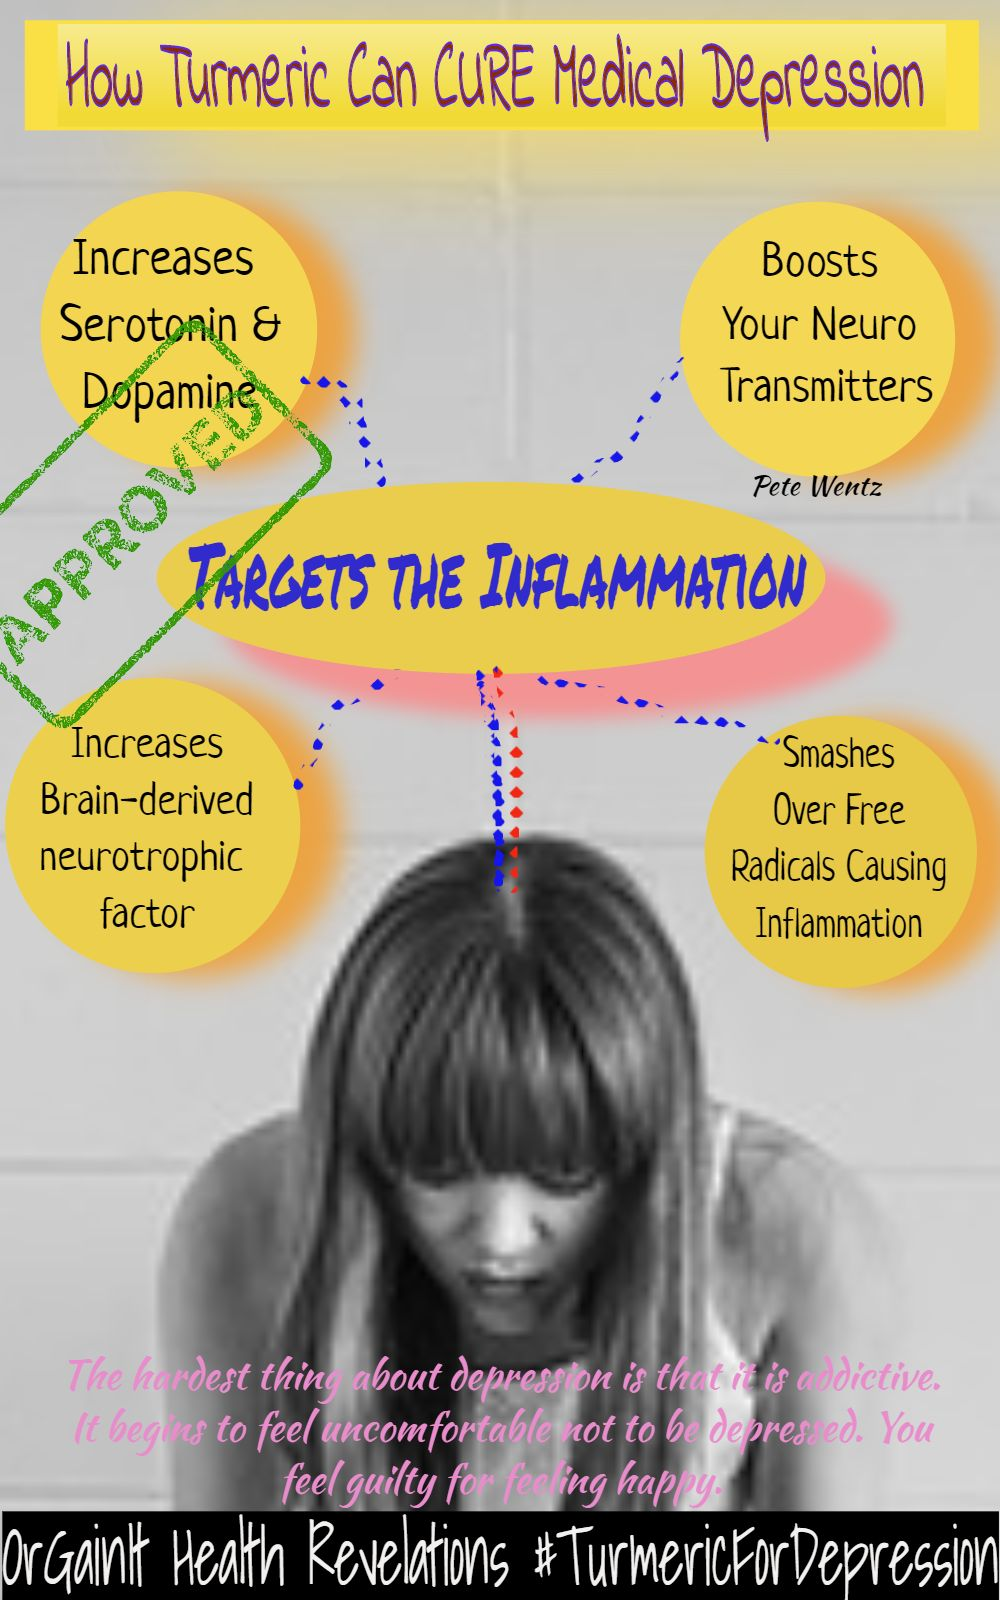 Infographic of how turmeric curcuminoids work 5 ways to combat depression